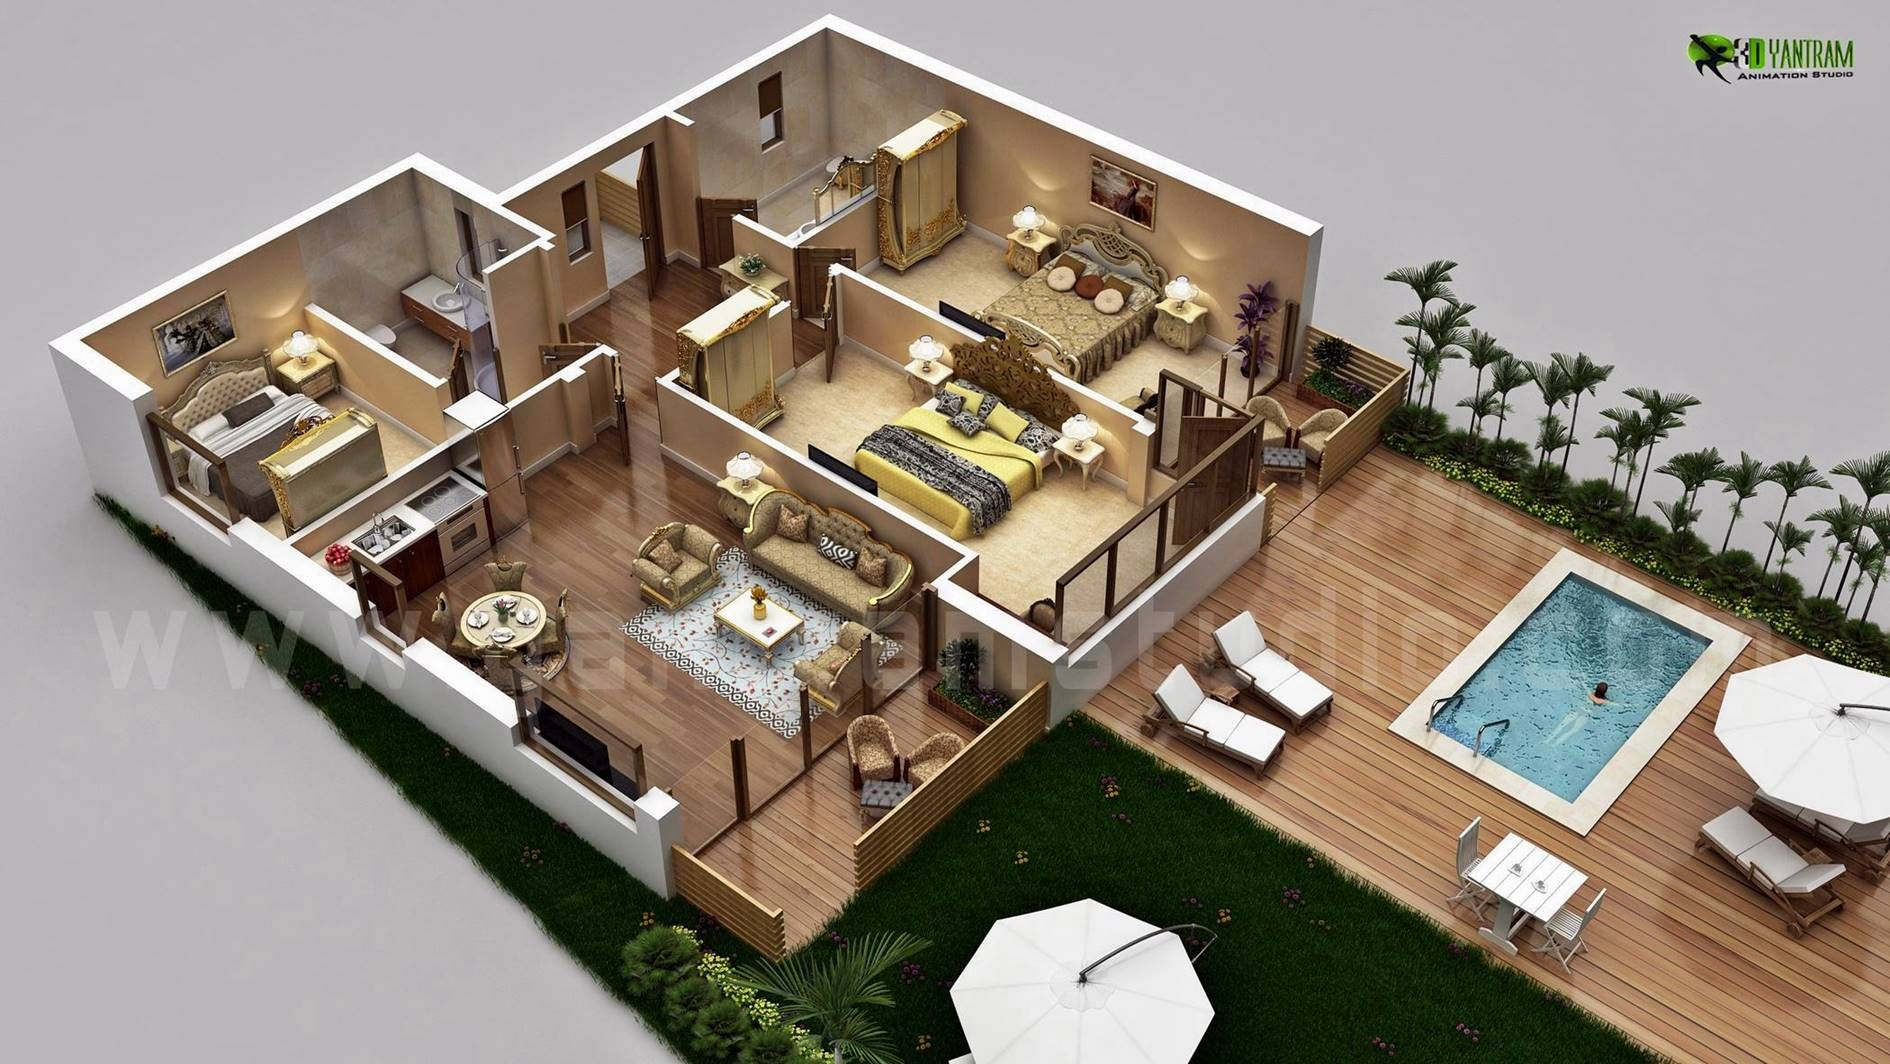 3d Luxurious Residential Floor Plan Concept From 3d Yantram Architectural Design Studio House Designs Exterior Luxury House Plans Floor Plan Design